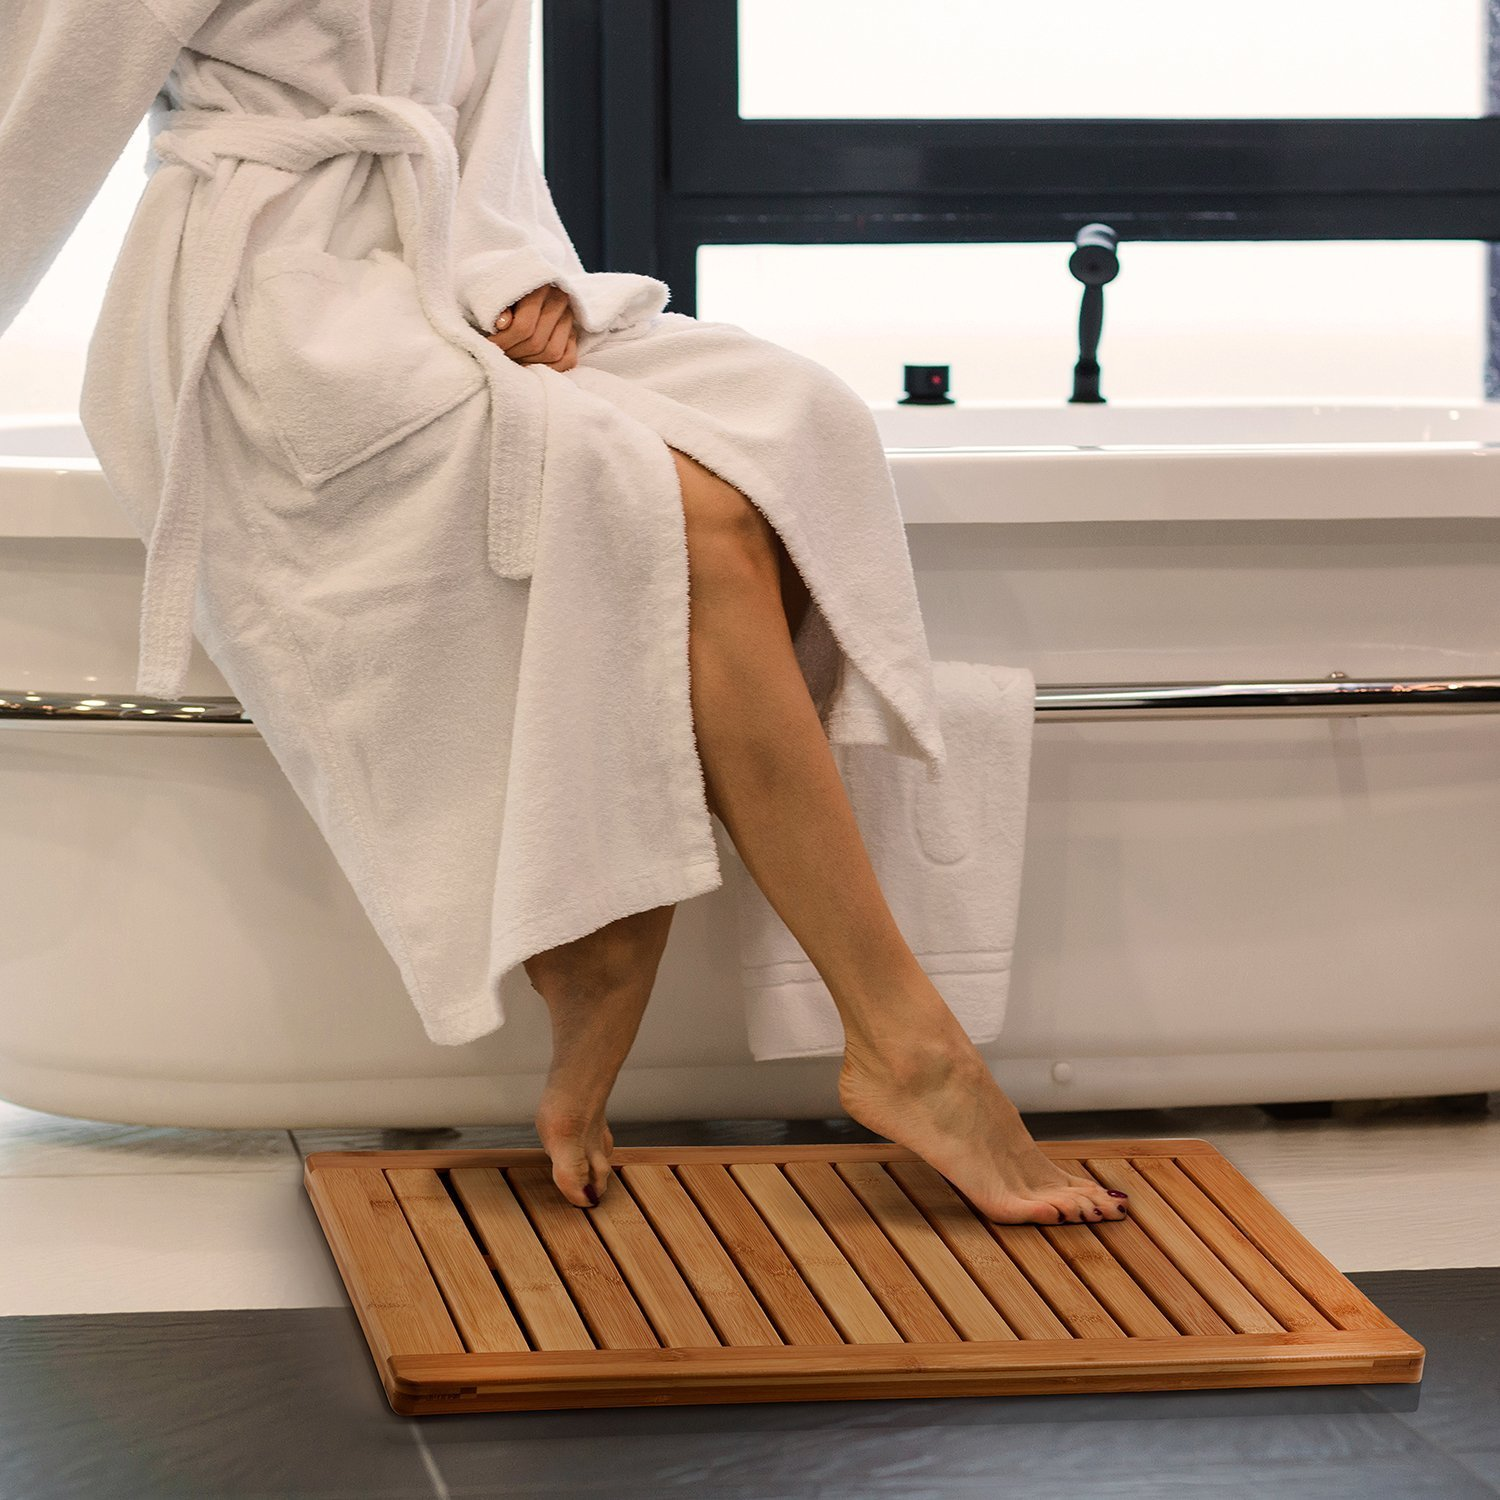 is after square and spot bamboo x shower this water crafted a bath sturdy com smooth of landing makes churchtelemessagingsystem or designed resistant mat minimalist